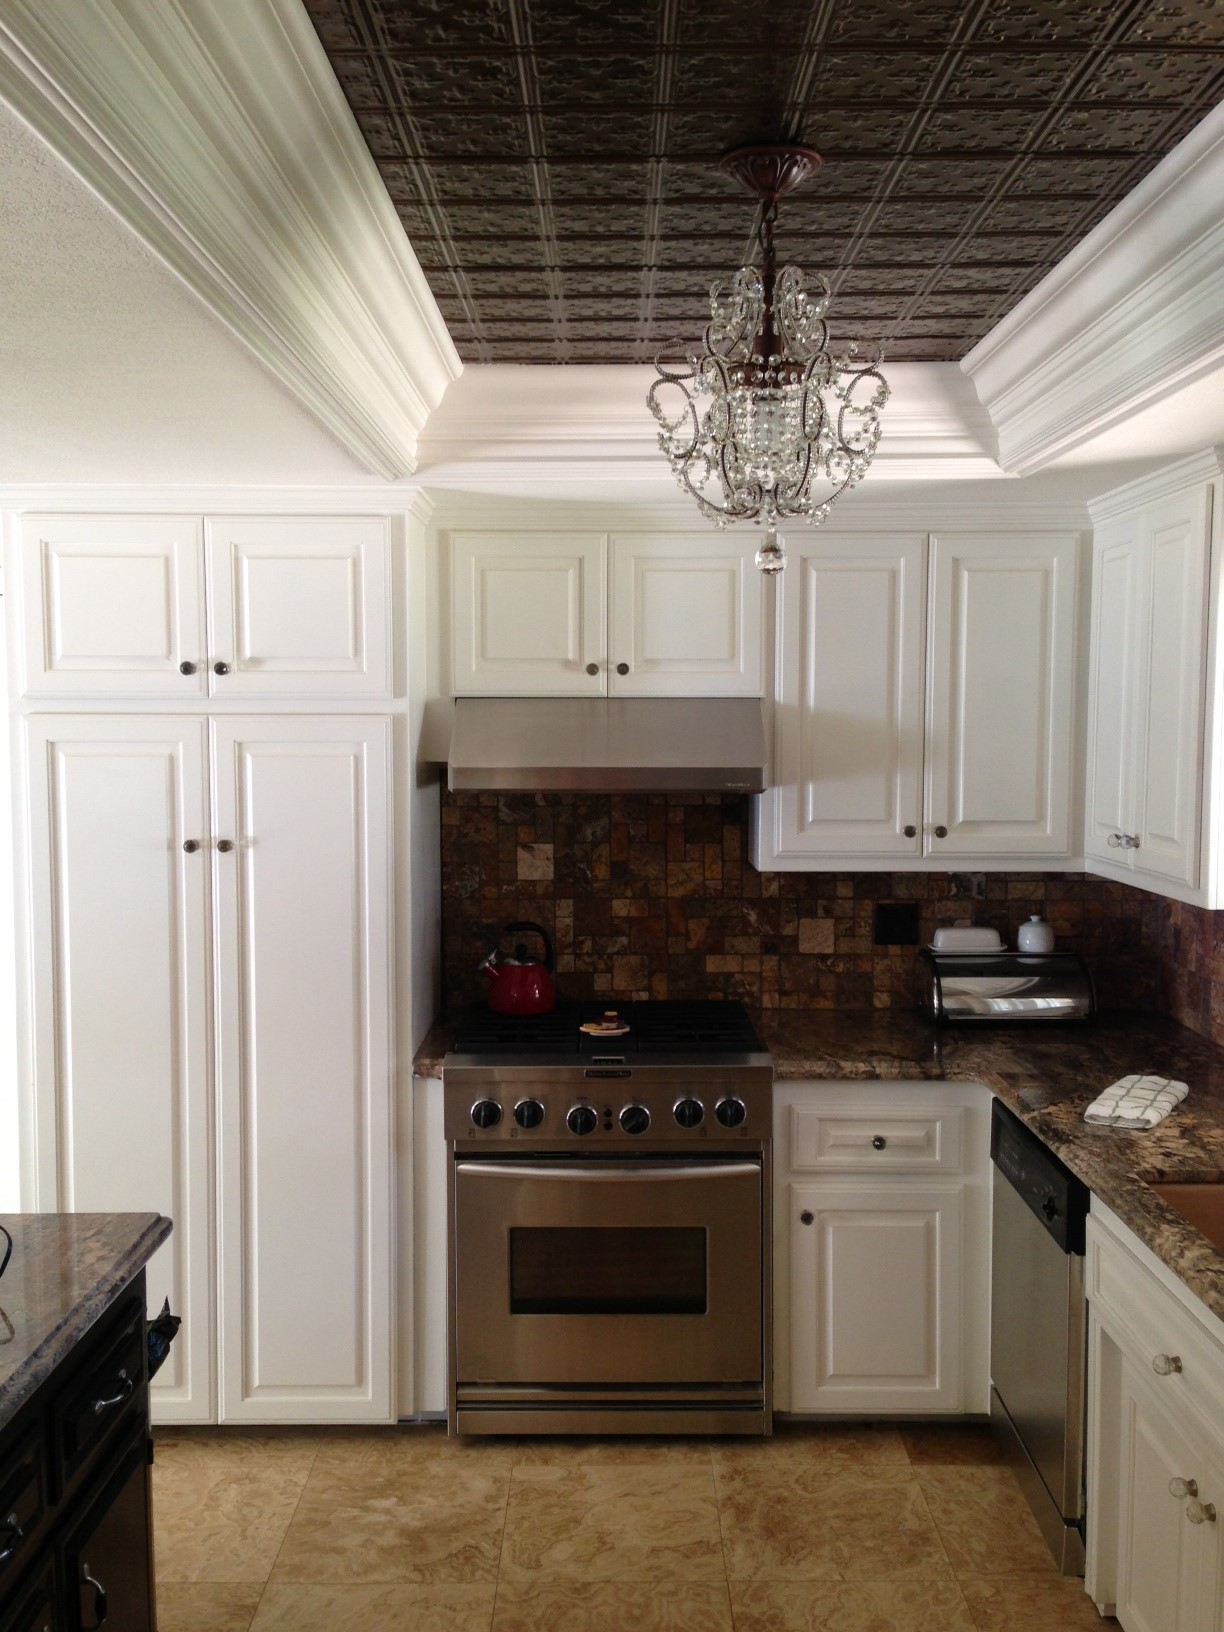 blog inexpensive kitchen cabinets An Inexpensive Kitchen Cabinet Remodel